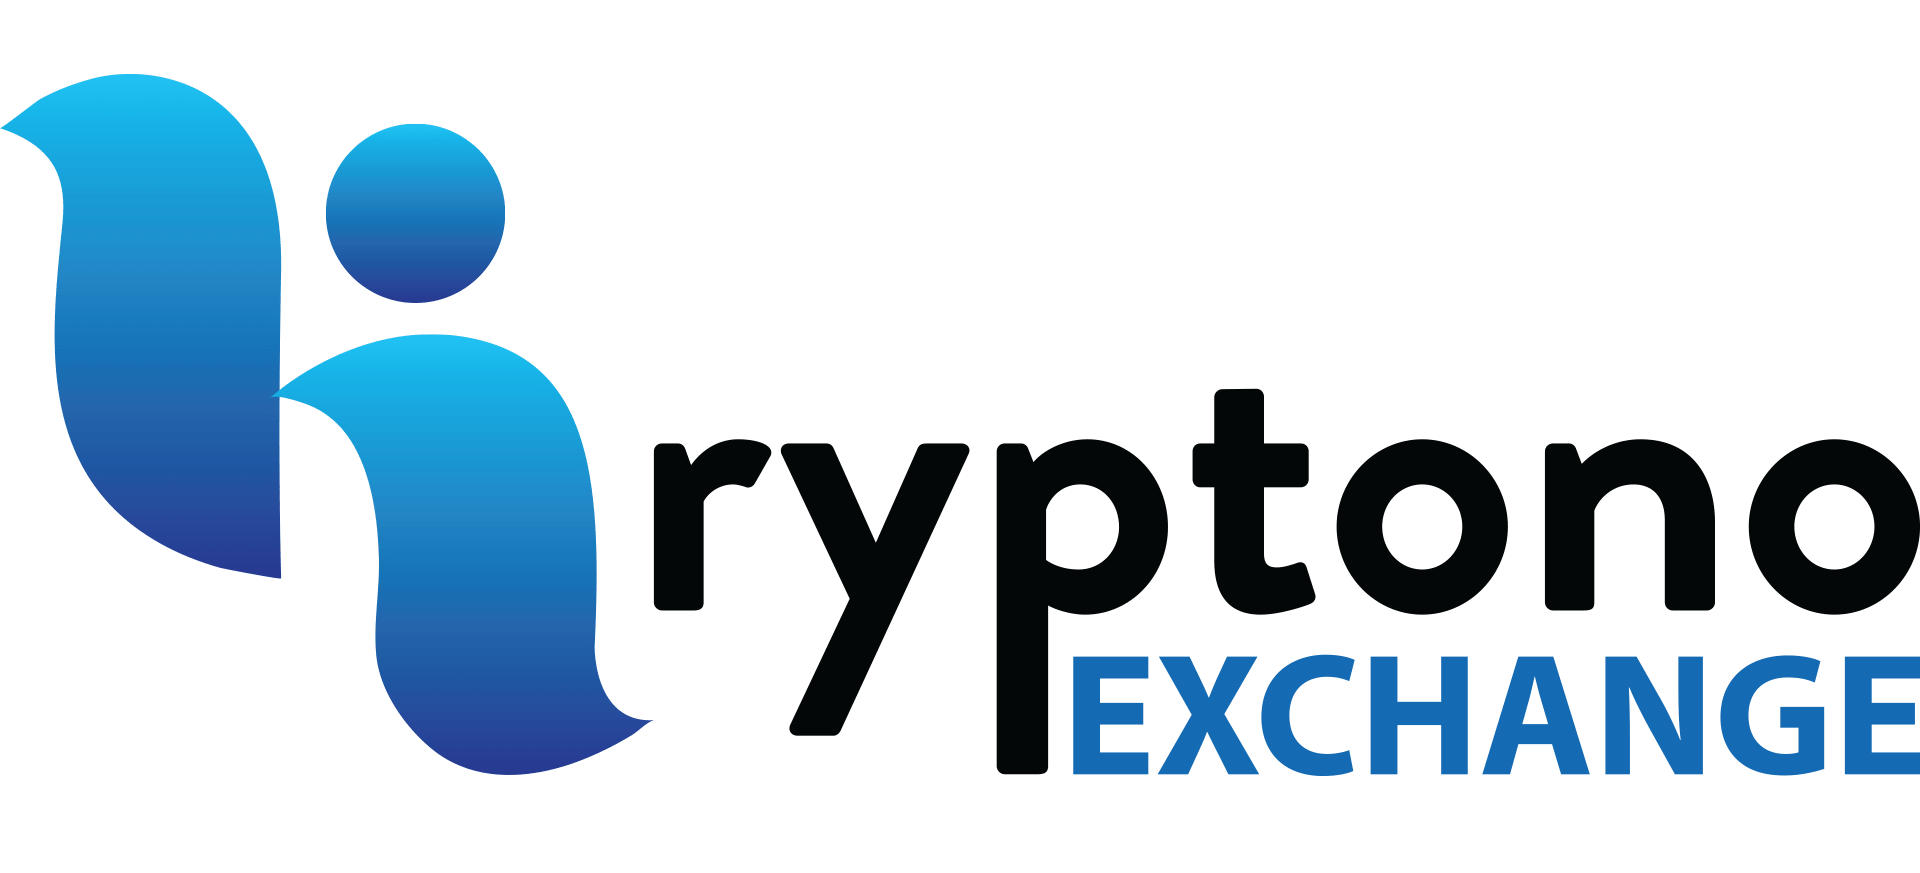 API Document - Kryptono Exchange